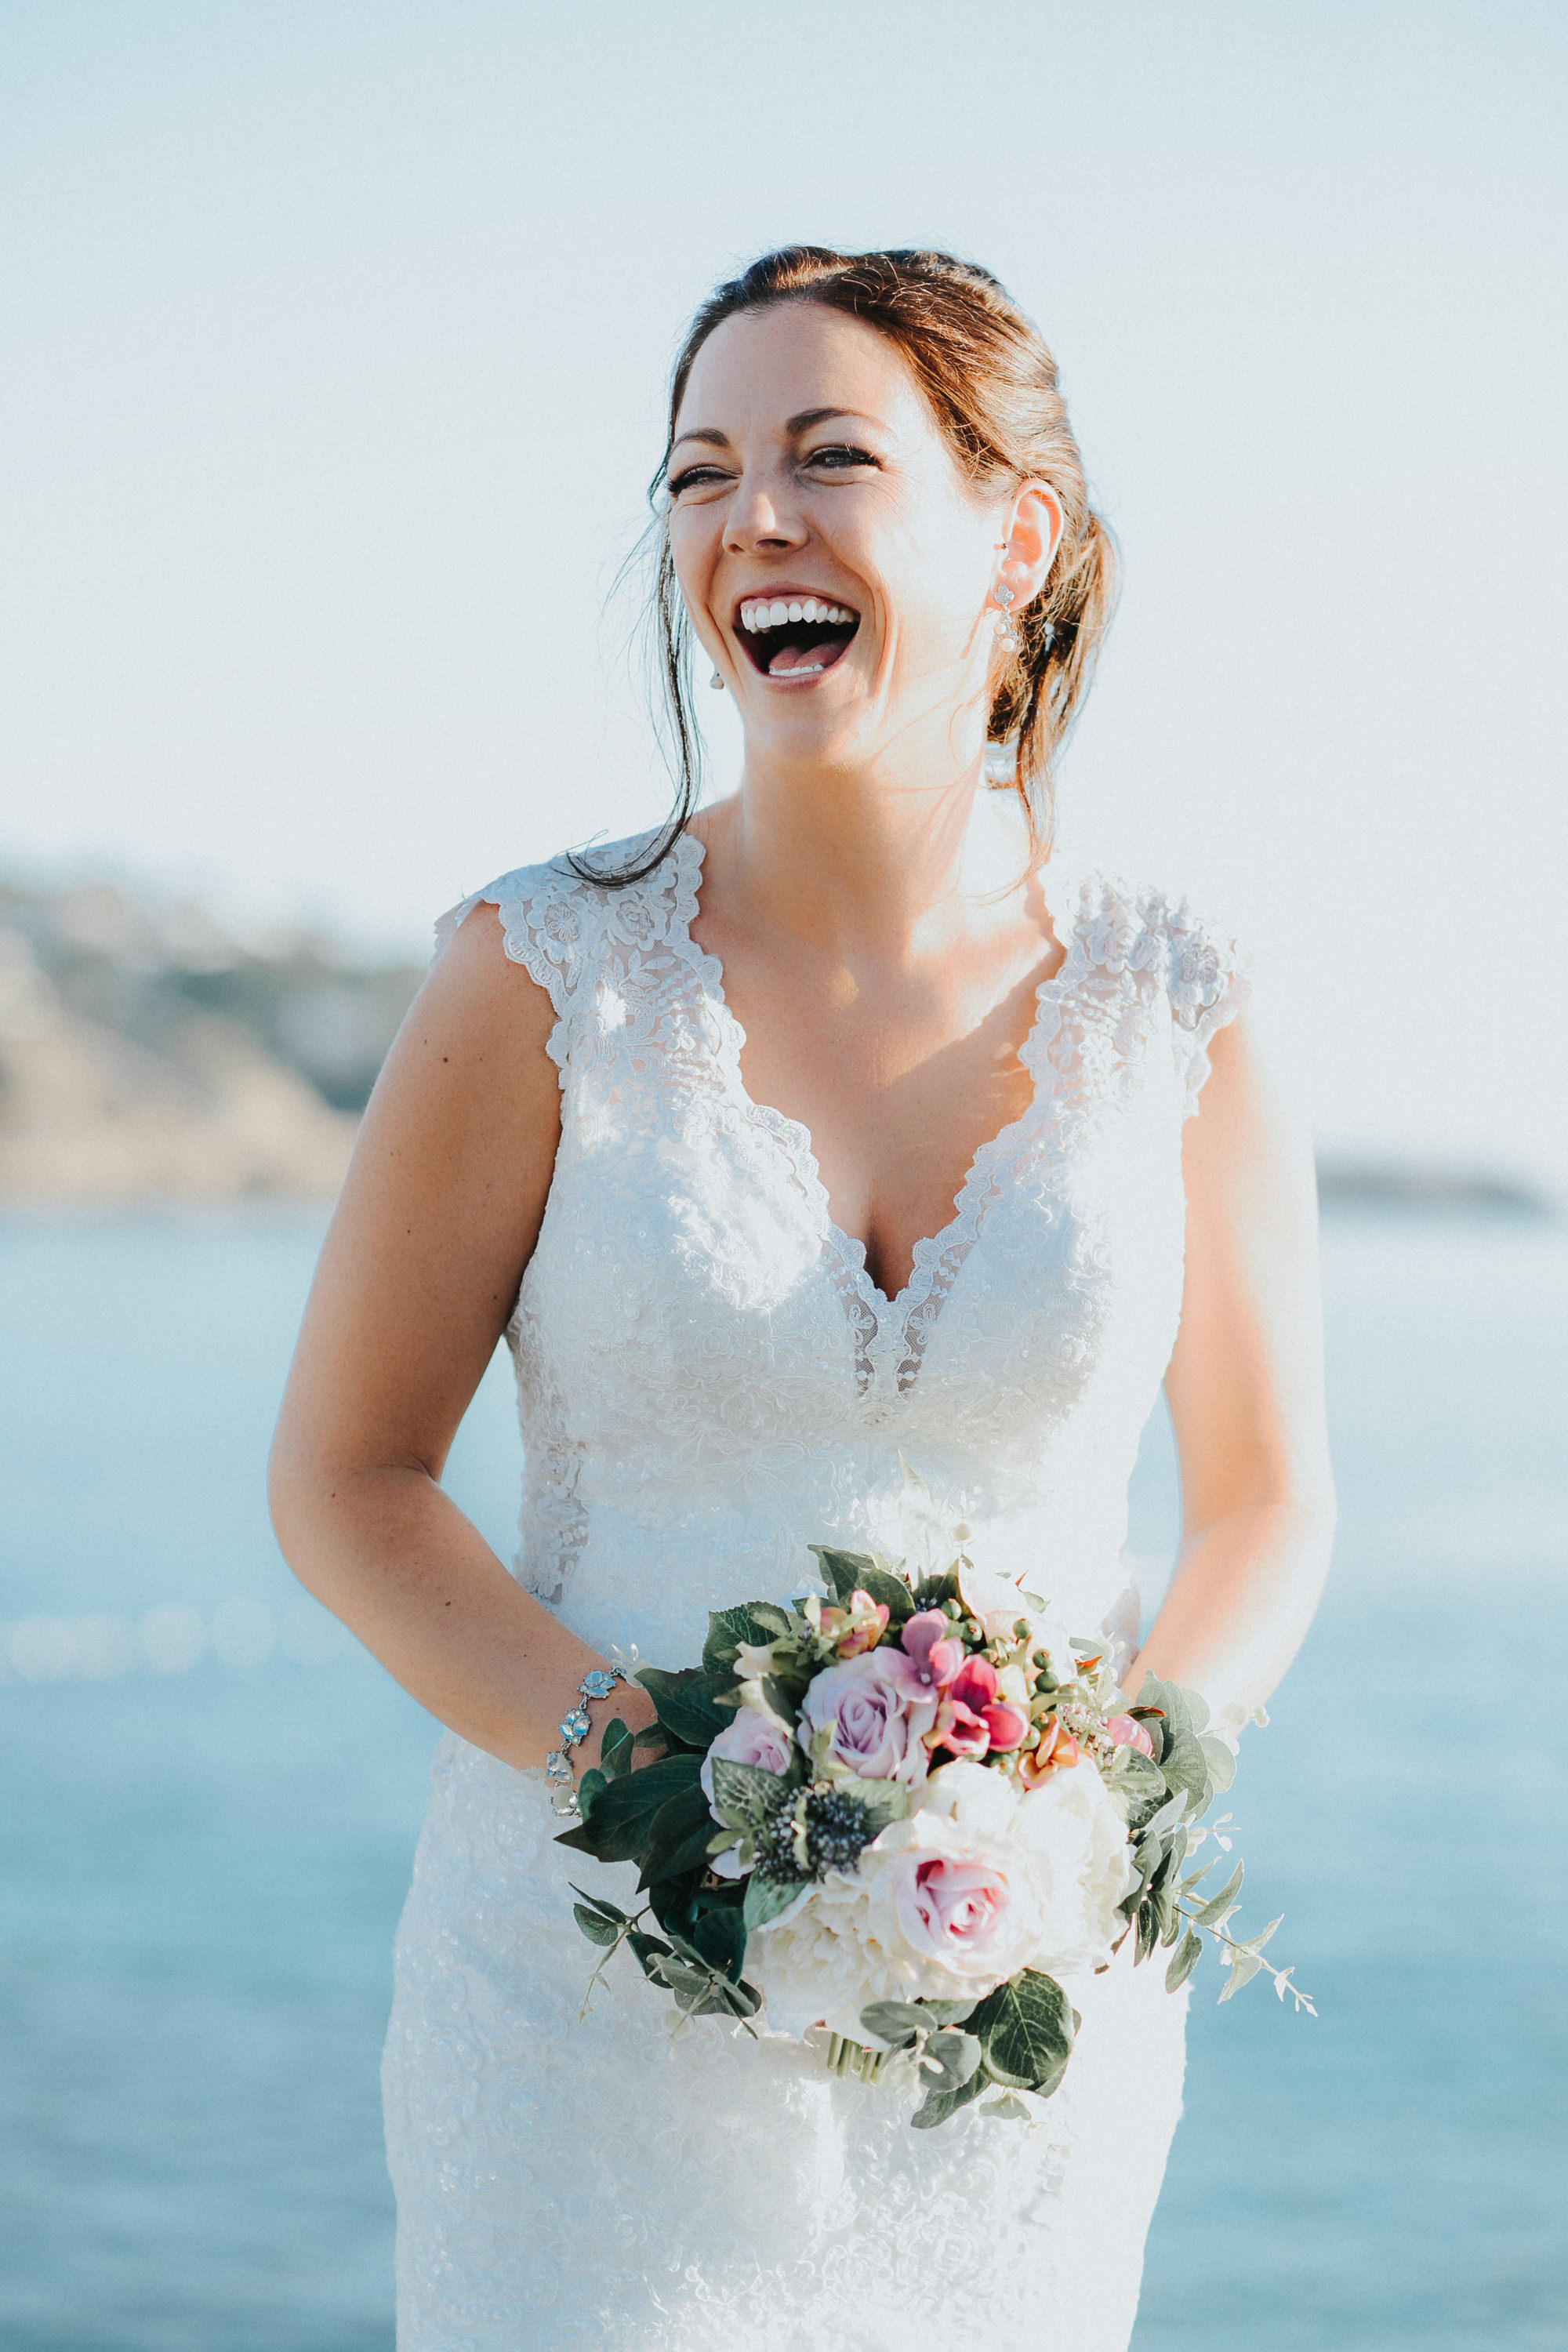 Bride Laughing Ibiza Wedding